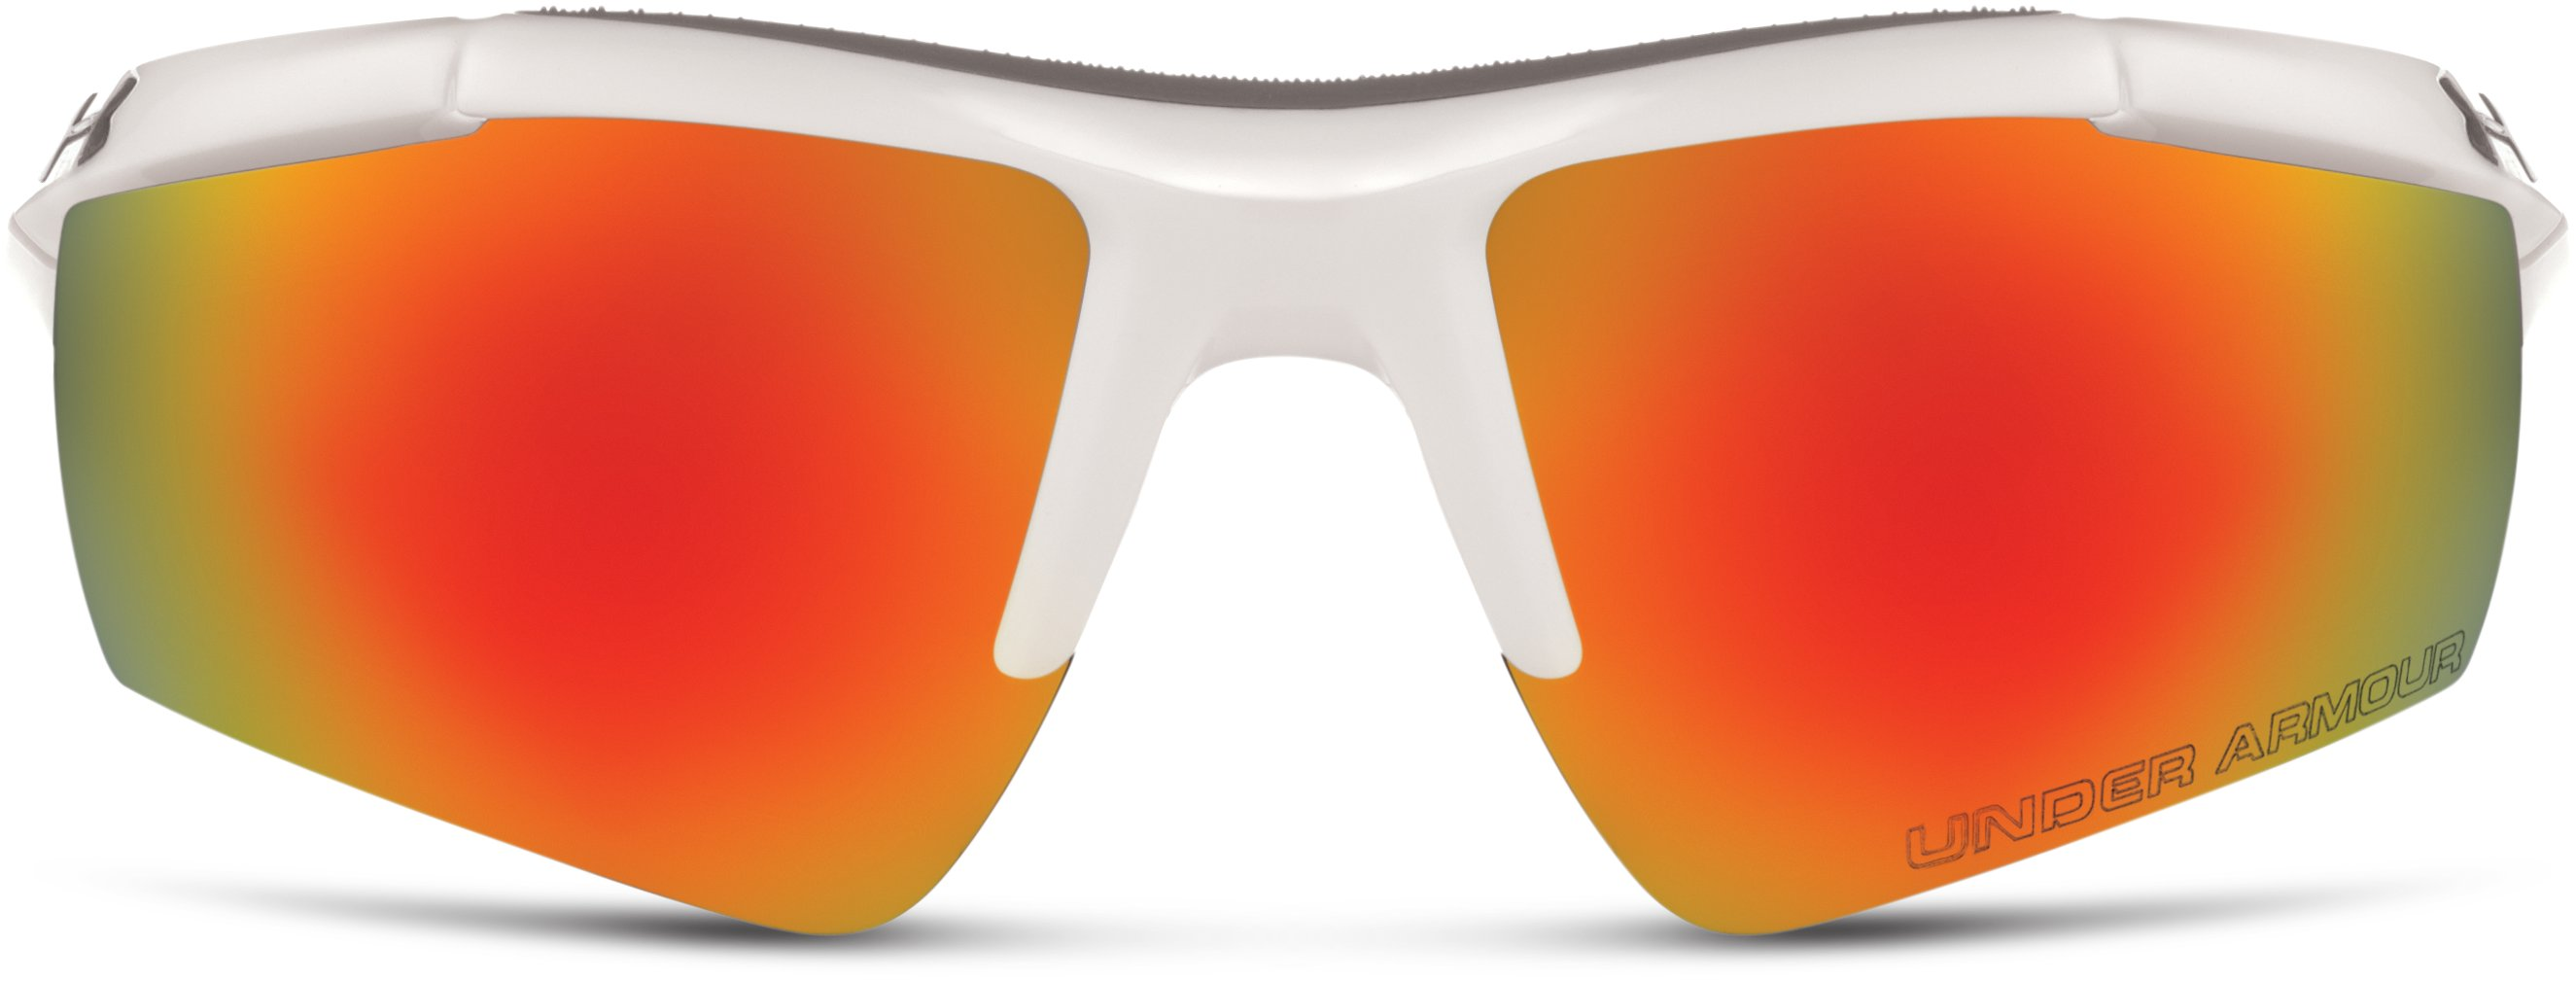 UA Core Sunglasses, Shiny White